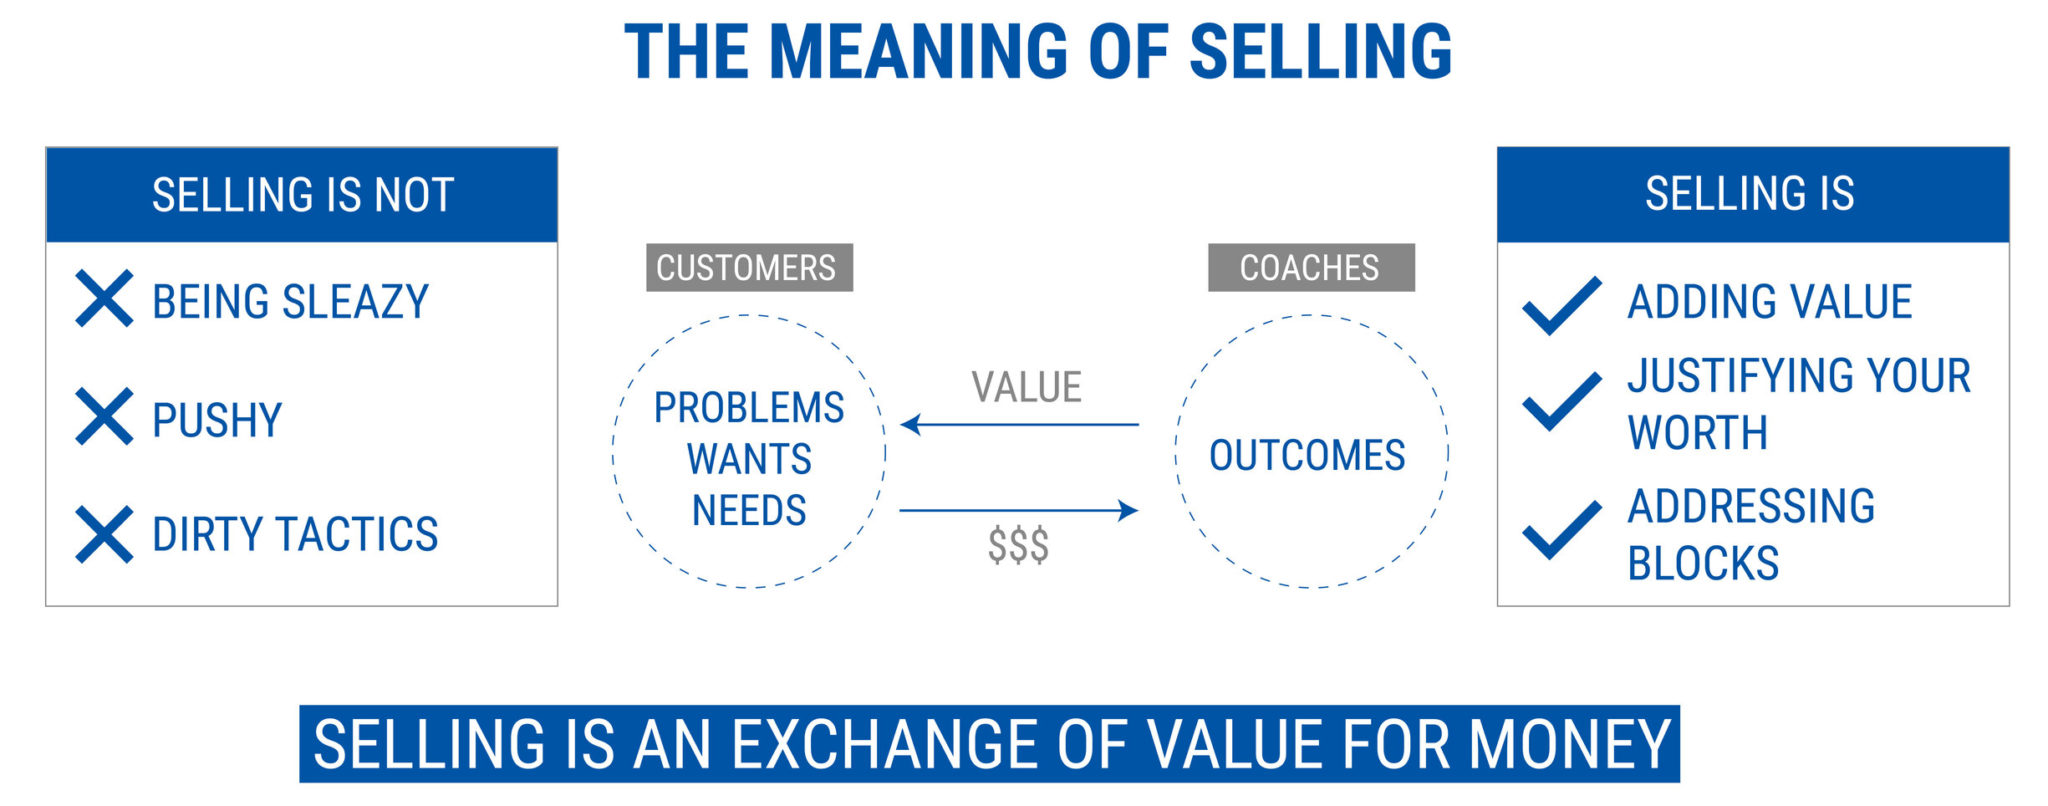 the meaning of selling - starting a coaching business while working full-time